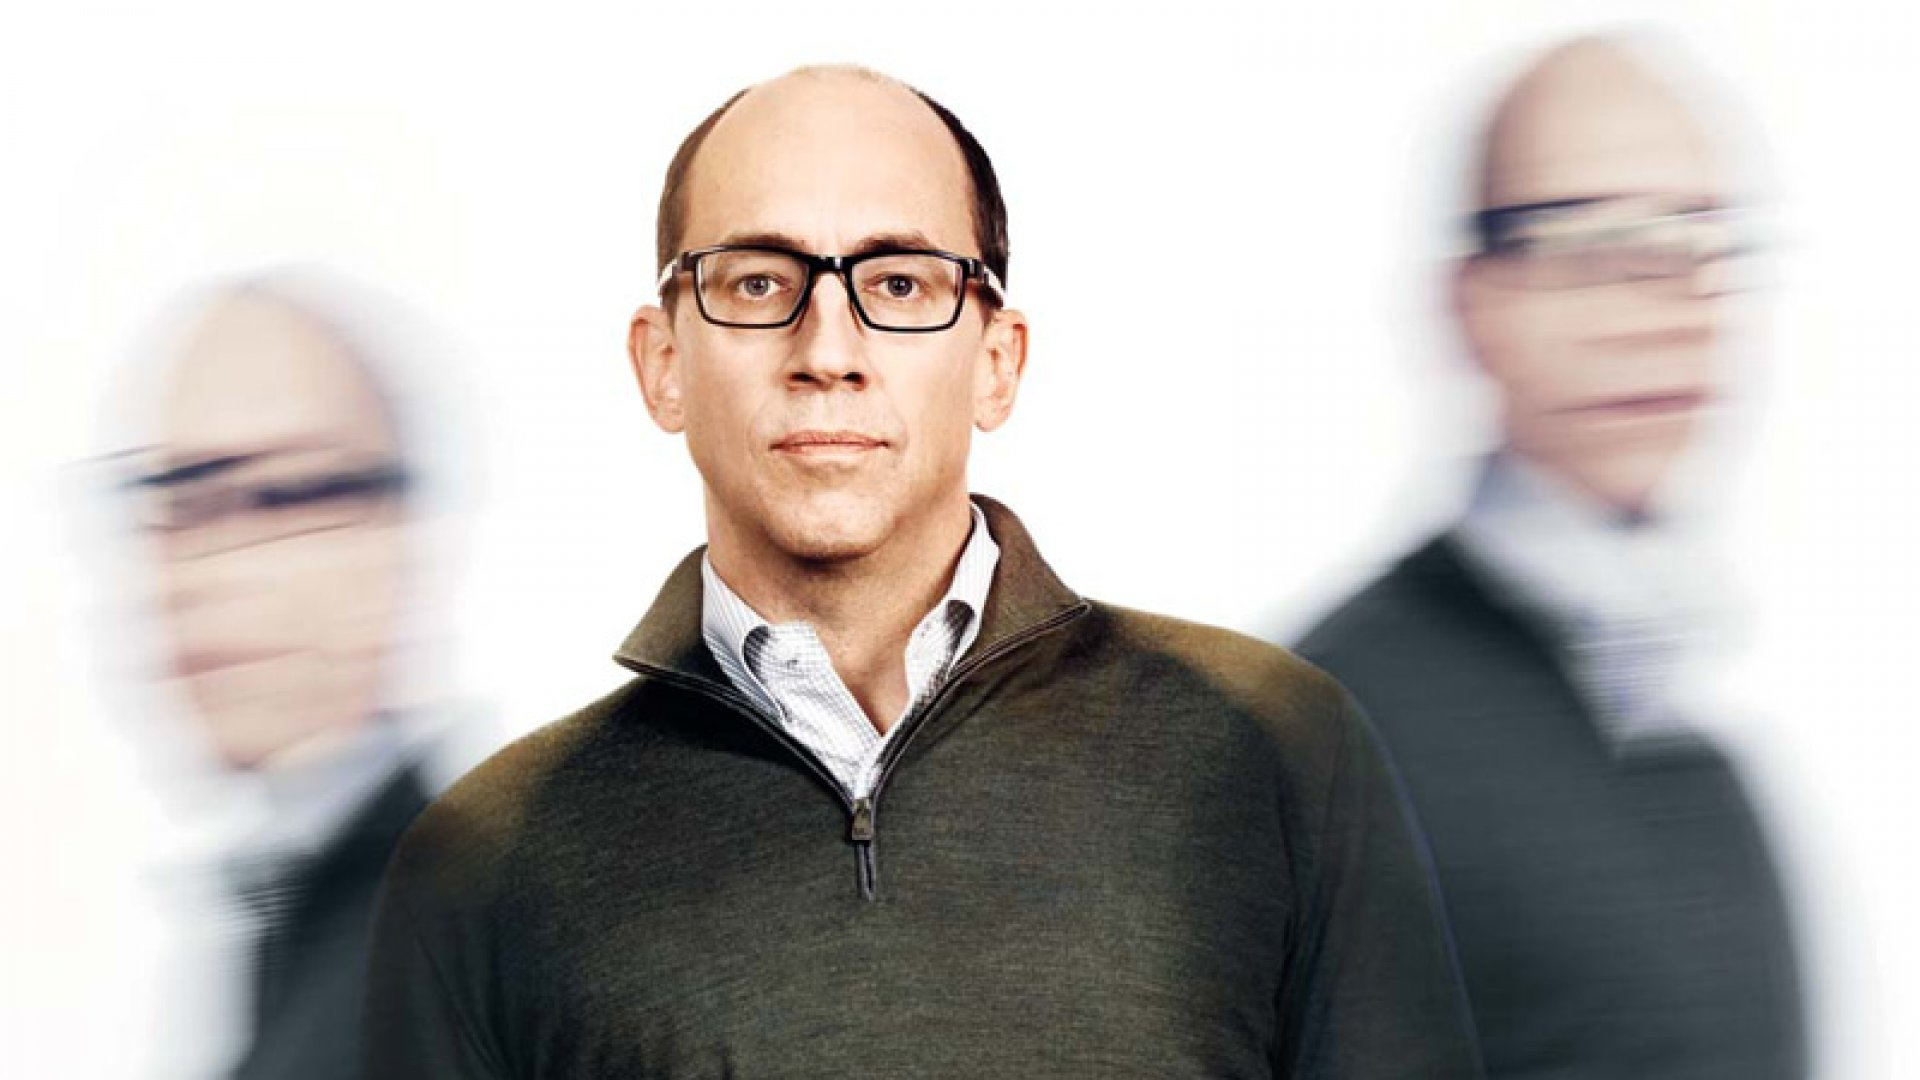 """Dick Costolo manages to stay productive even as some on Wall Street call for his head. Read <a href=""""http://www.inc.com/magazine/201503/jeff-bercovici/how-dick-costolo-keeps-his-focus.html"""" target=""""_blank""""><em>Twitter's CEO: How I Stay Focused Under Fire</em></a>"""